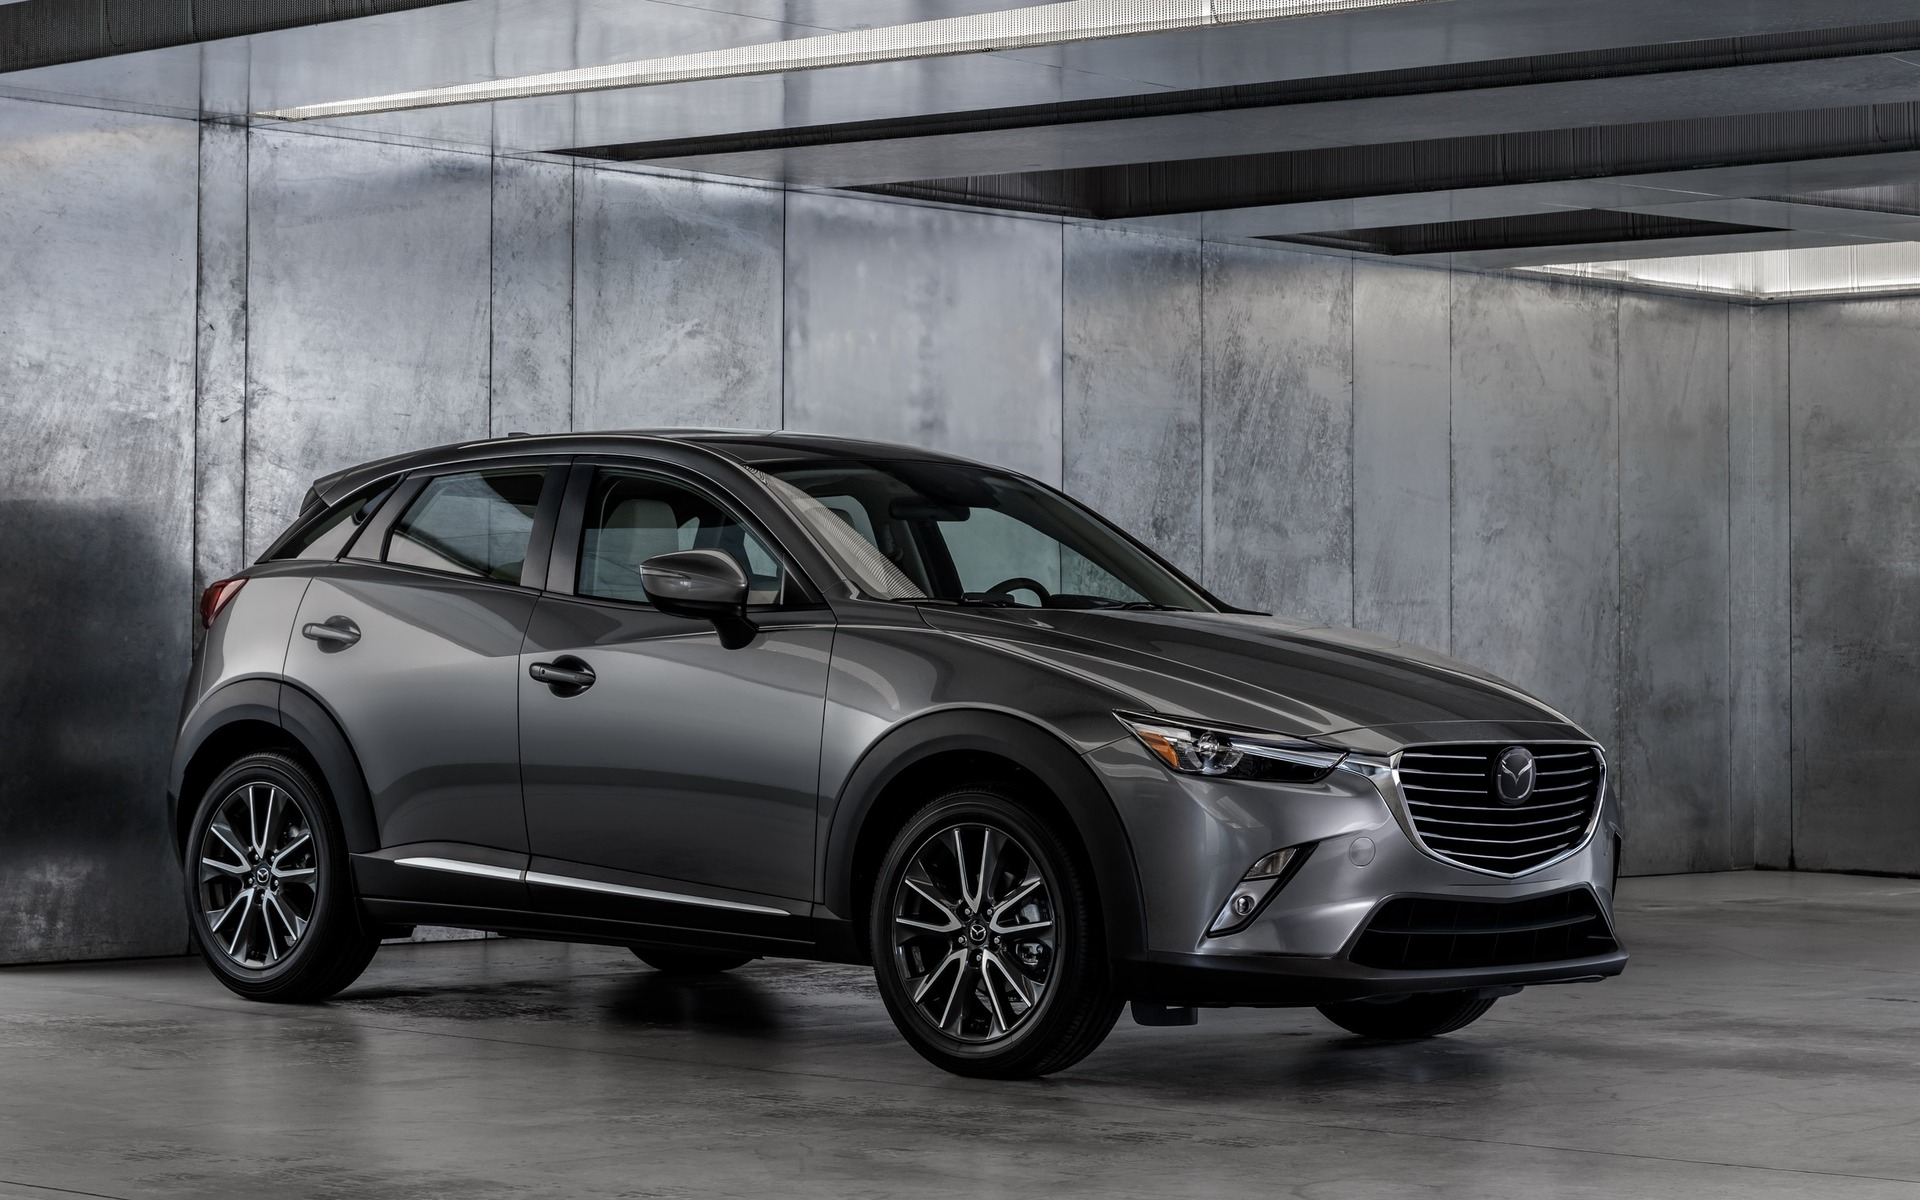 Charming A Manual Transmission For The 2018 Mazda CX 3